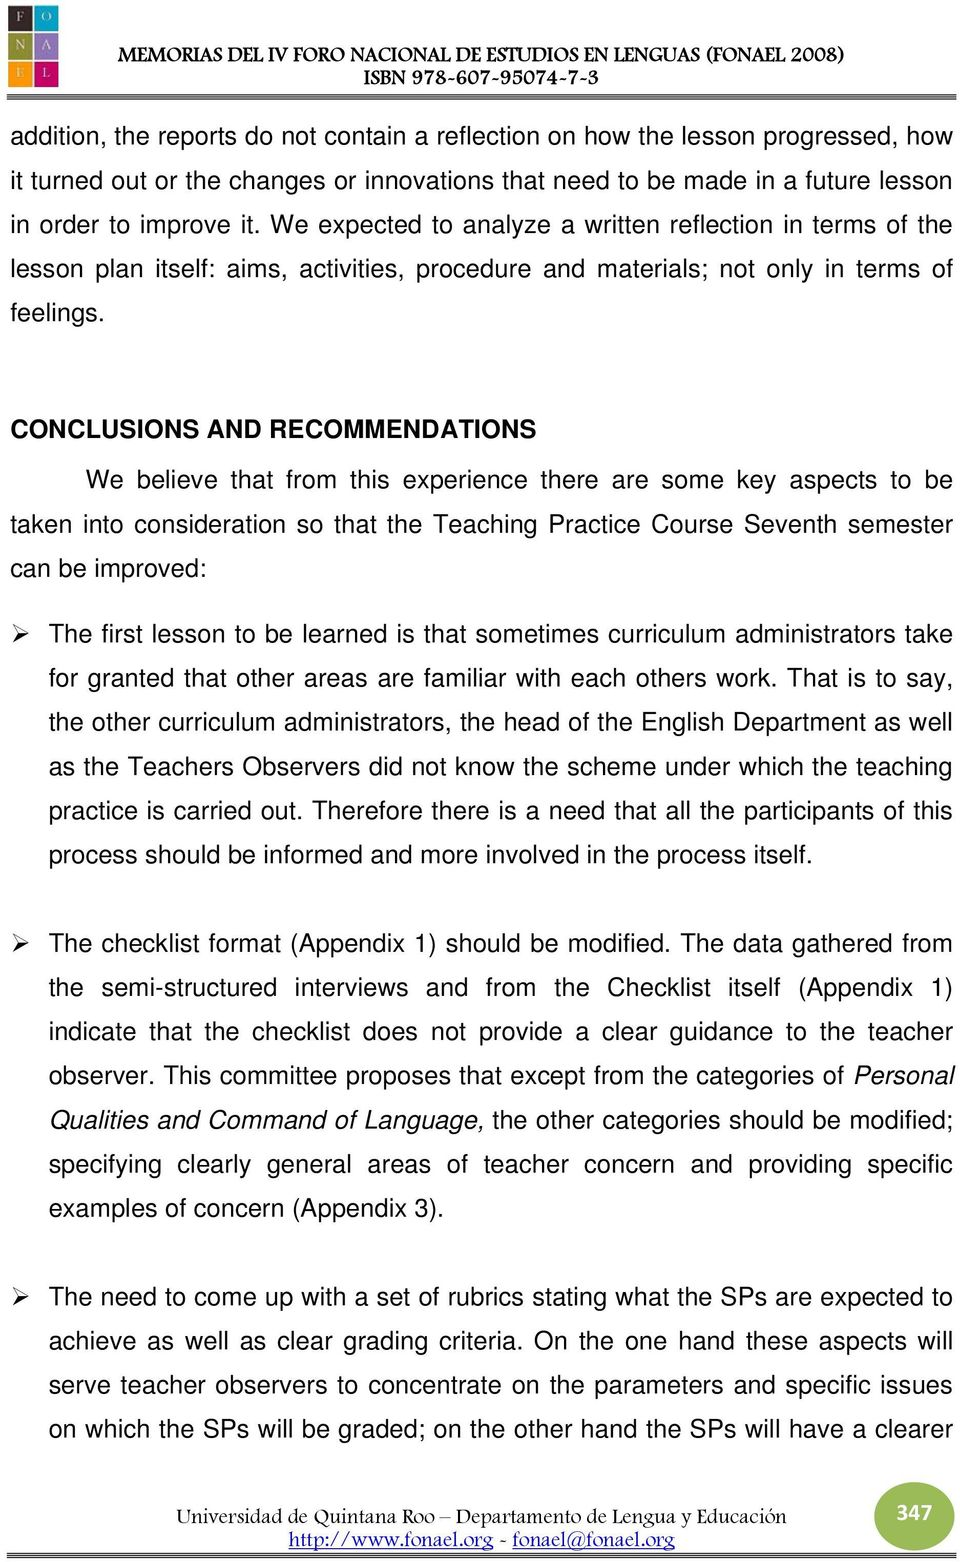 CONCLUSIONS AND RECOMMENDATIONS We believe that from this experience there are some key aspects to be taken into consideration so that the Teaching Practice Course Seventh semester can be improved: